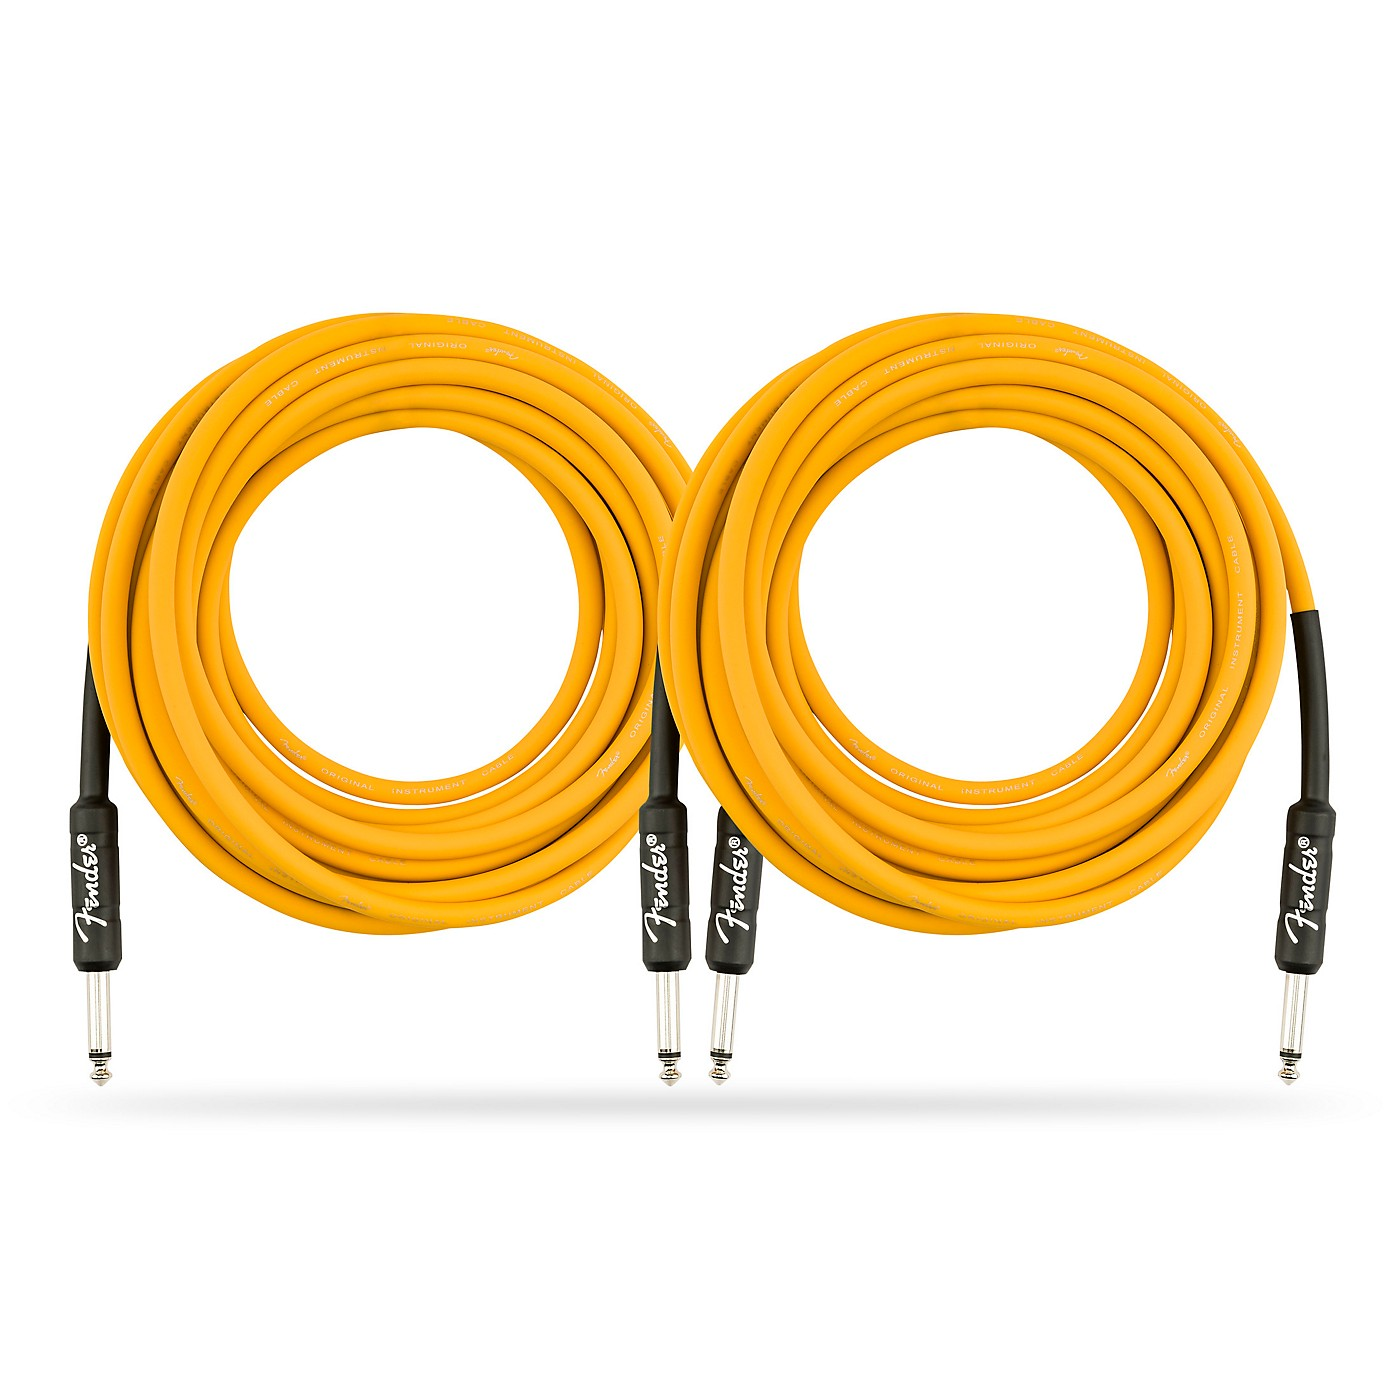 Fender Original Series Limited Edition Butterscotch Blonde Instrument Cable - 18.6 ft. - 2 Pack thumbnail